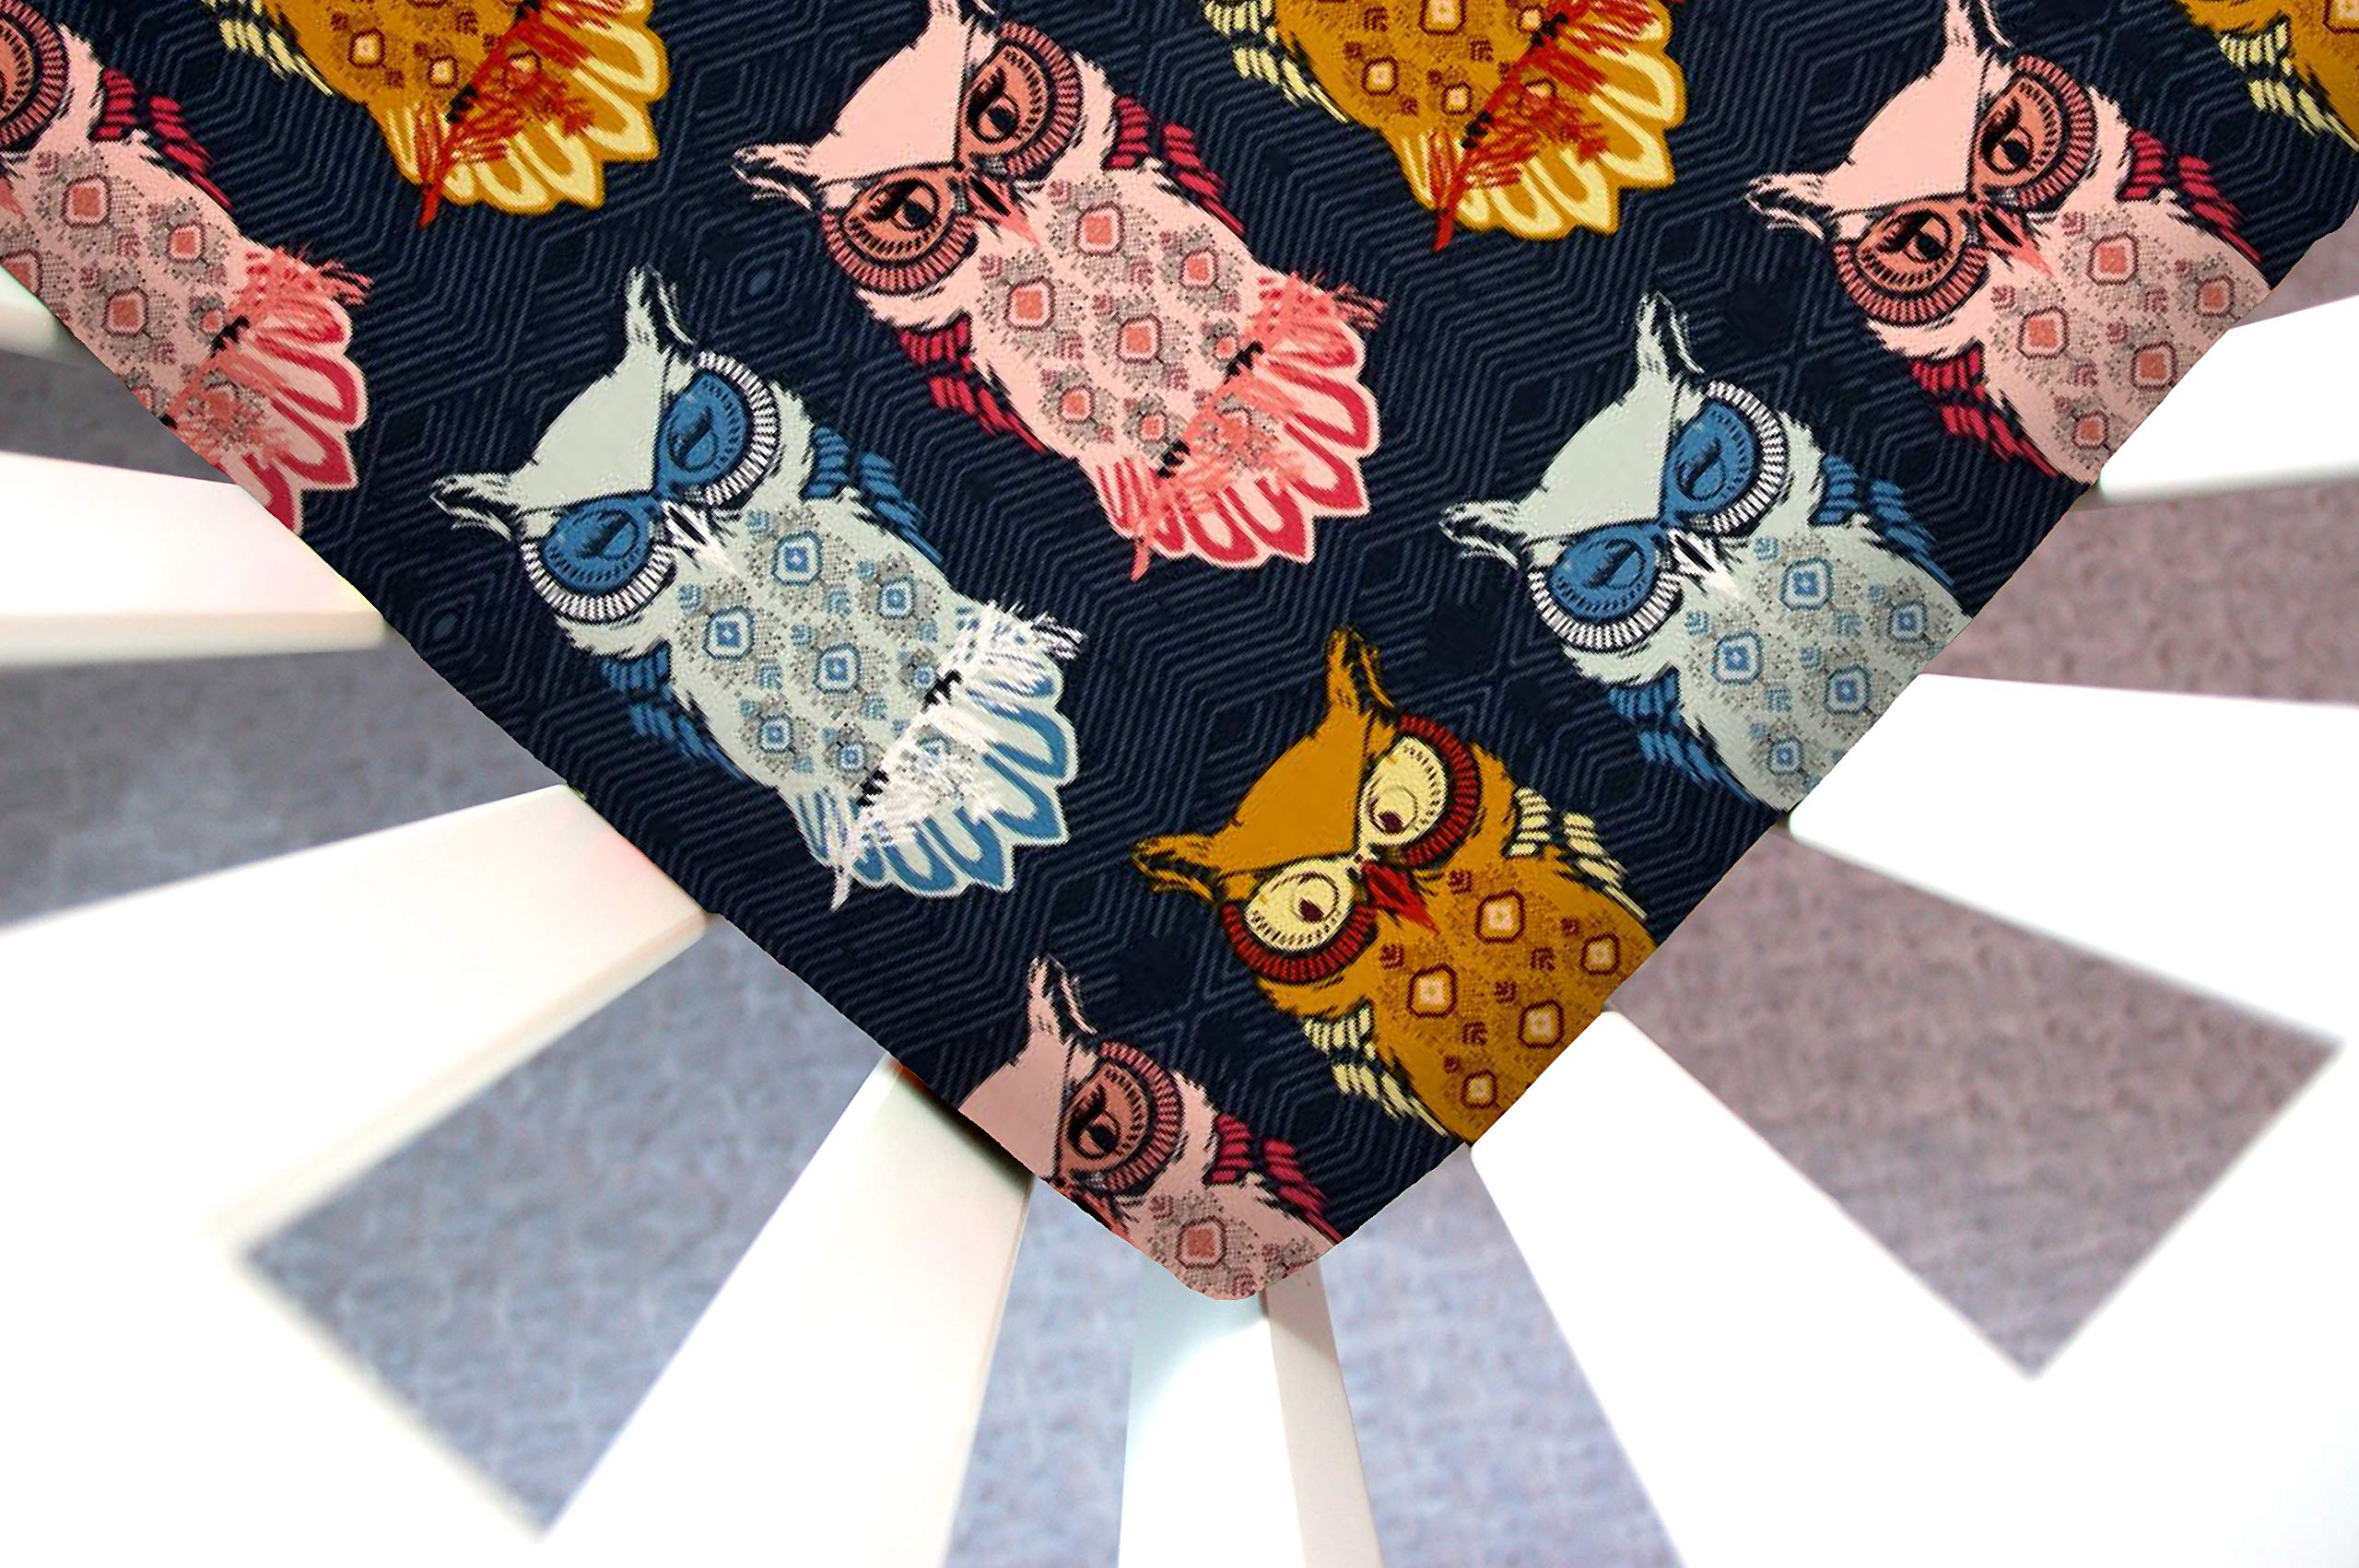 Little Moose by Liza Handmade Sheet Made to Fit IKEA Toddler in Bird of Night (Owls). This Sheet was Not Created or Sold by IKEA. by Little Moose By Liza LLC